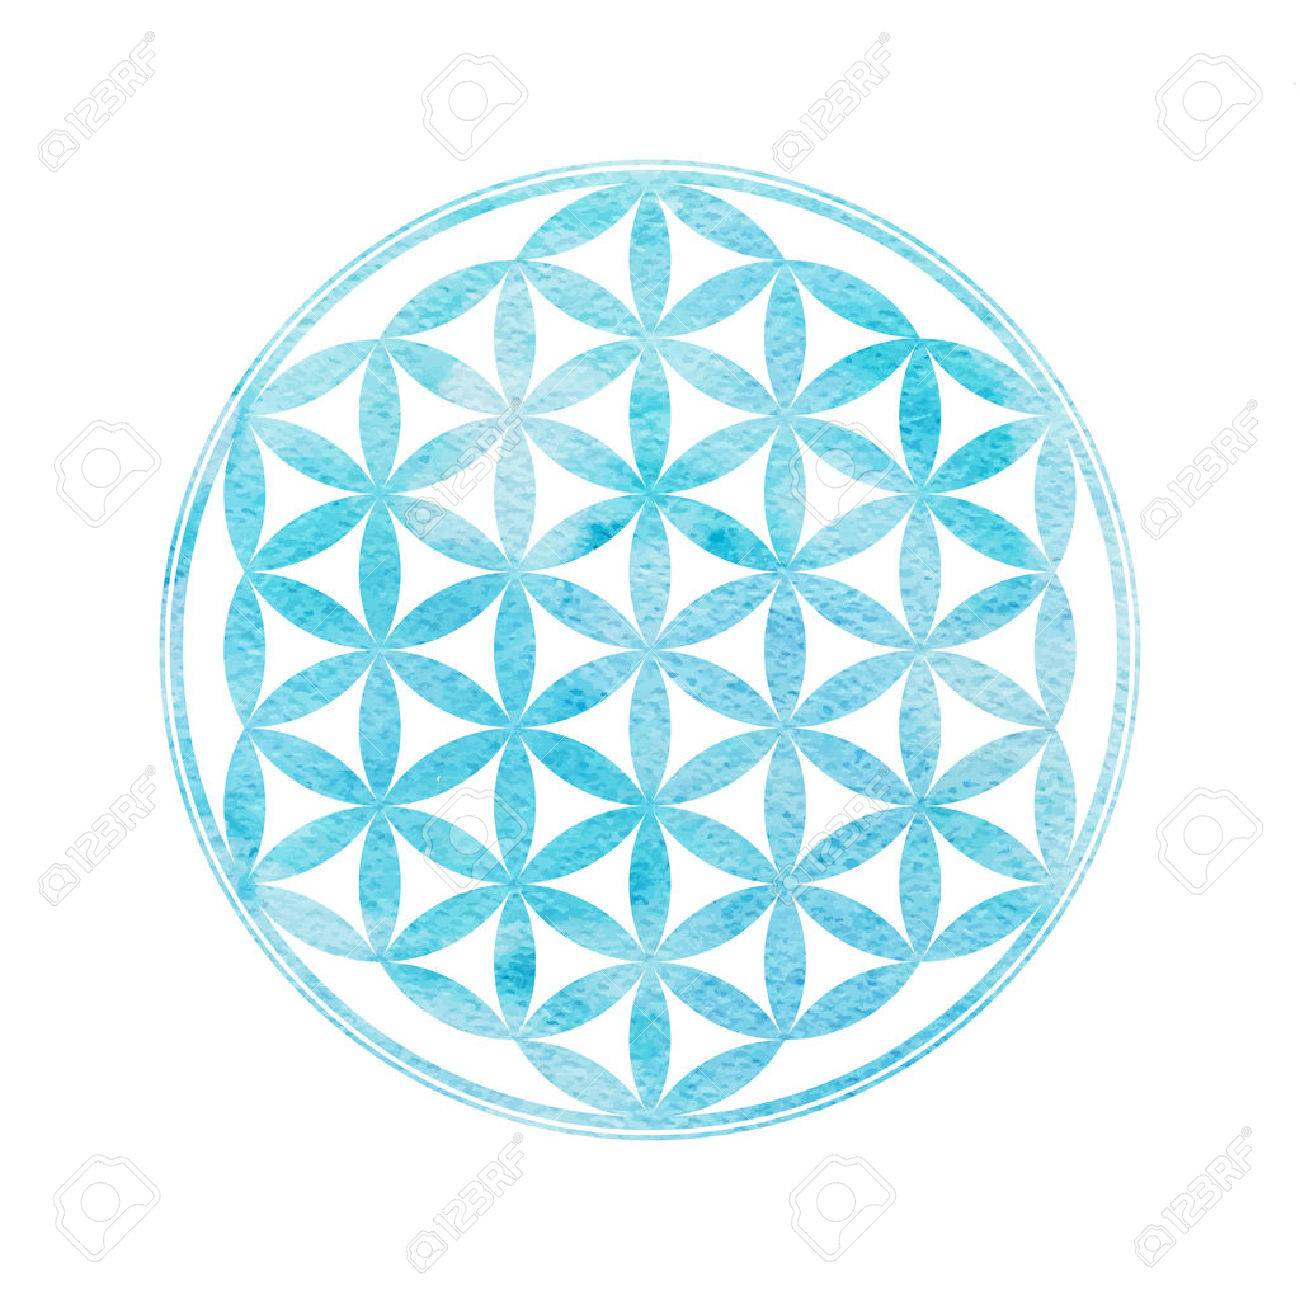 flower of life sacred geometry vector element with watercolor rh 123rf com sacred geometry vectors royalty free vectors sacred geometry vector set meaning